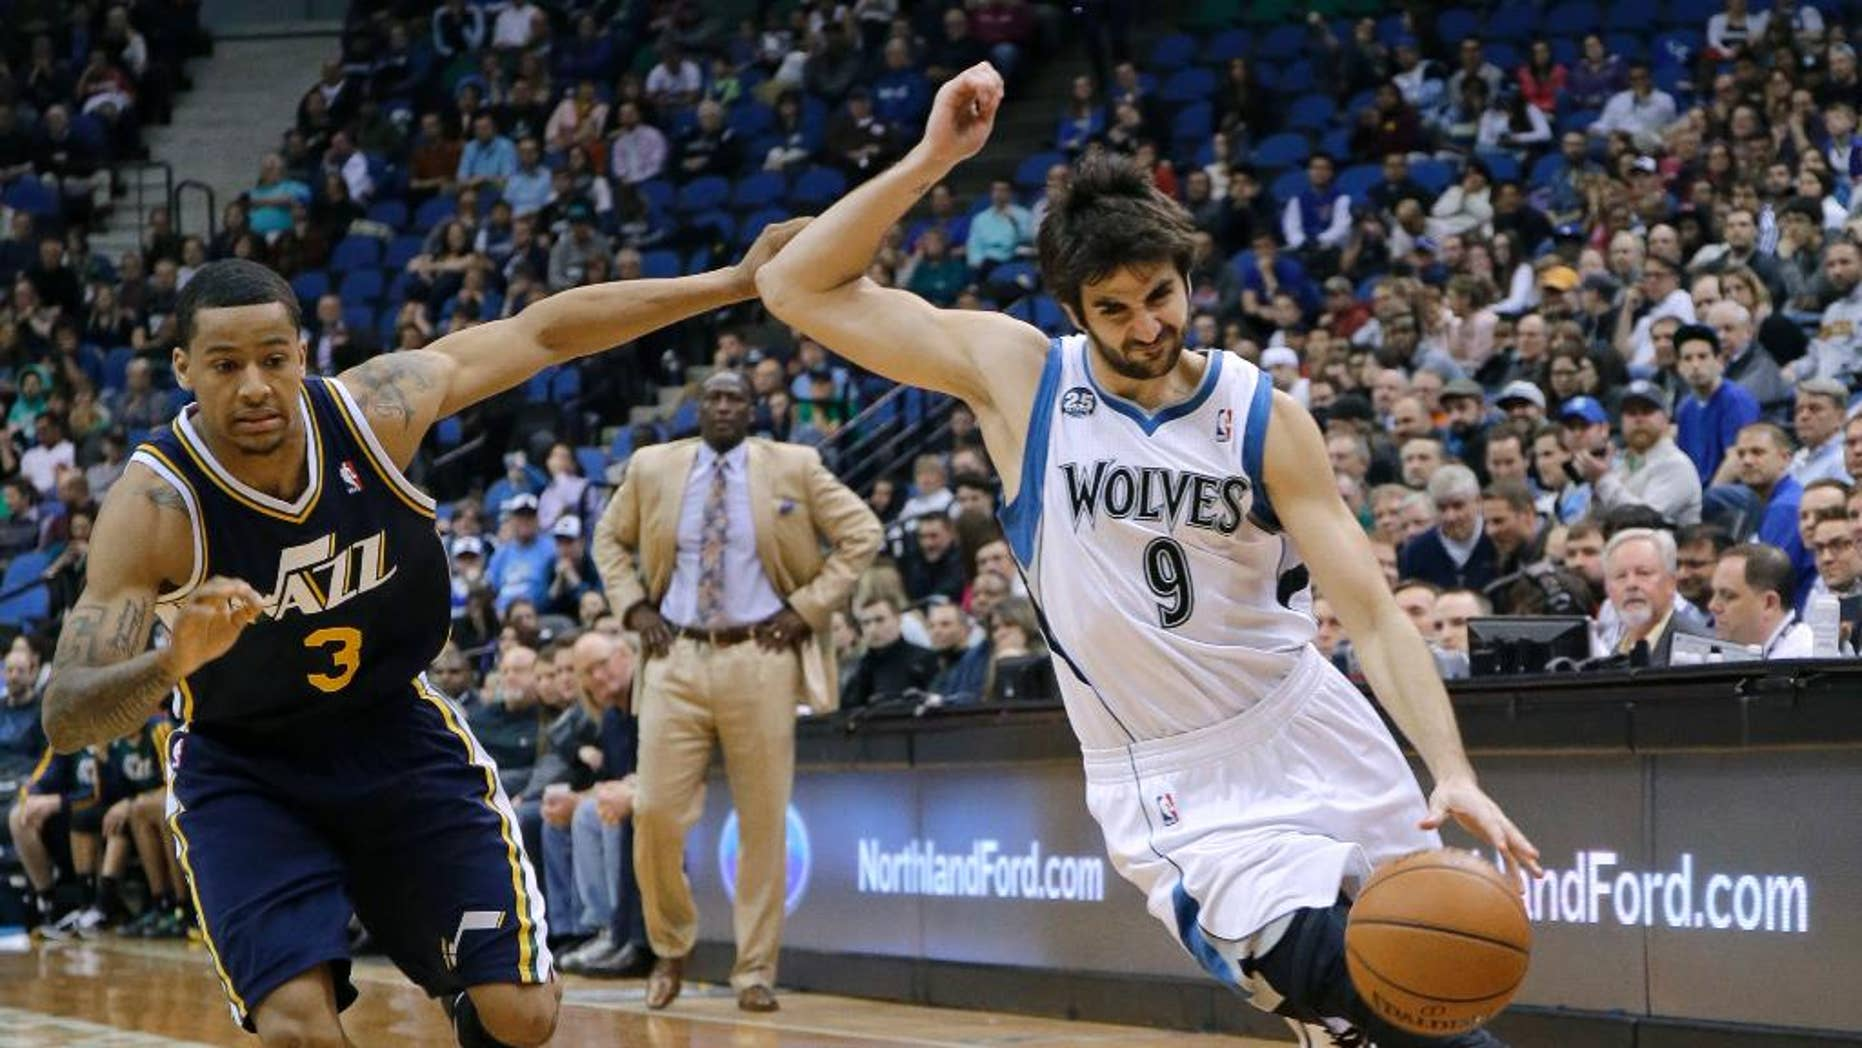 Minnesota Timberwolves guard Ricky Rubio (9), of Spain, tries to shake off Utah Jazz guard Trey Burke (3) on a drive during the fourth quarter of an NBA basketball game in Minneapolis, Wednesday, April 16, 2014. The Jazz won 136-130 in double overtime. (AP Photo/Ann Heisenfelt)